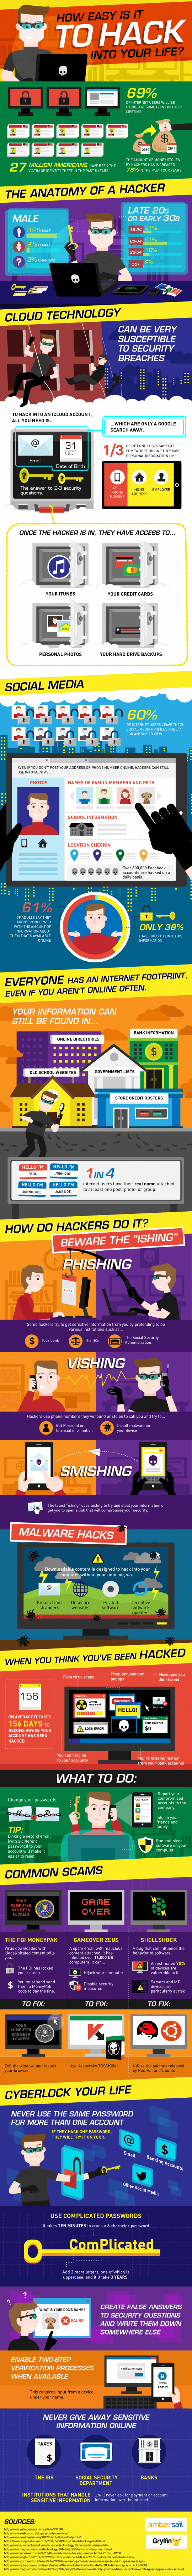 How Easy is it to Hack into Your Life?